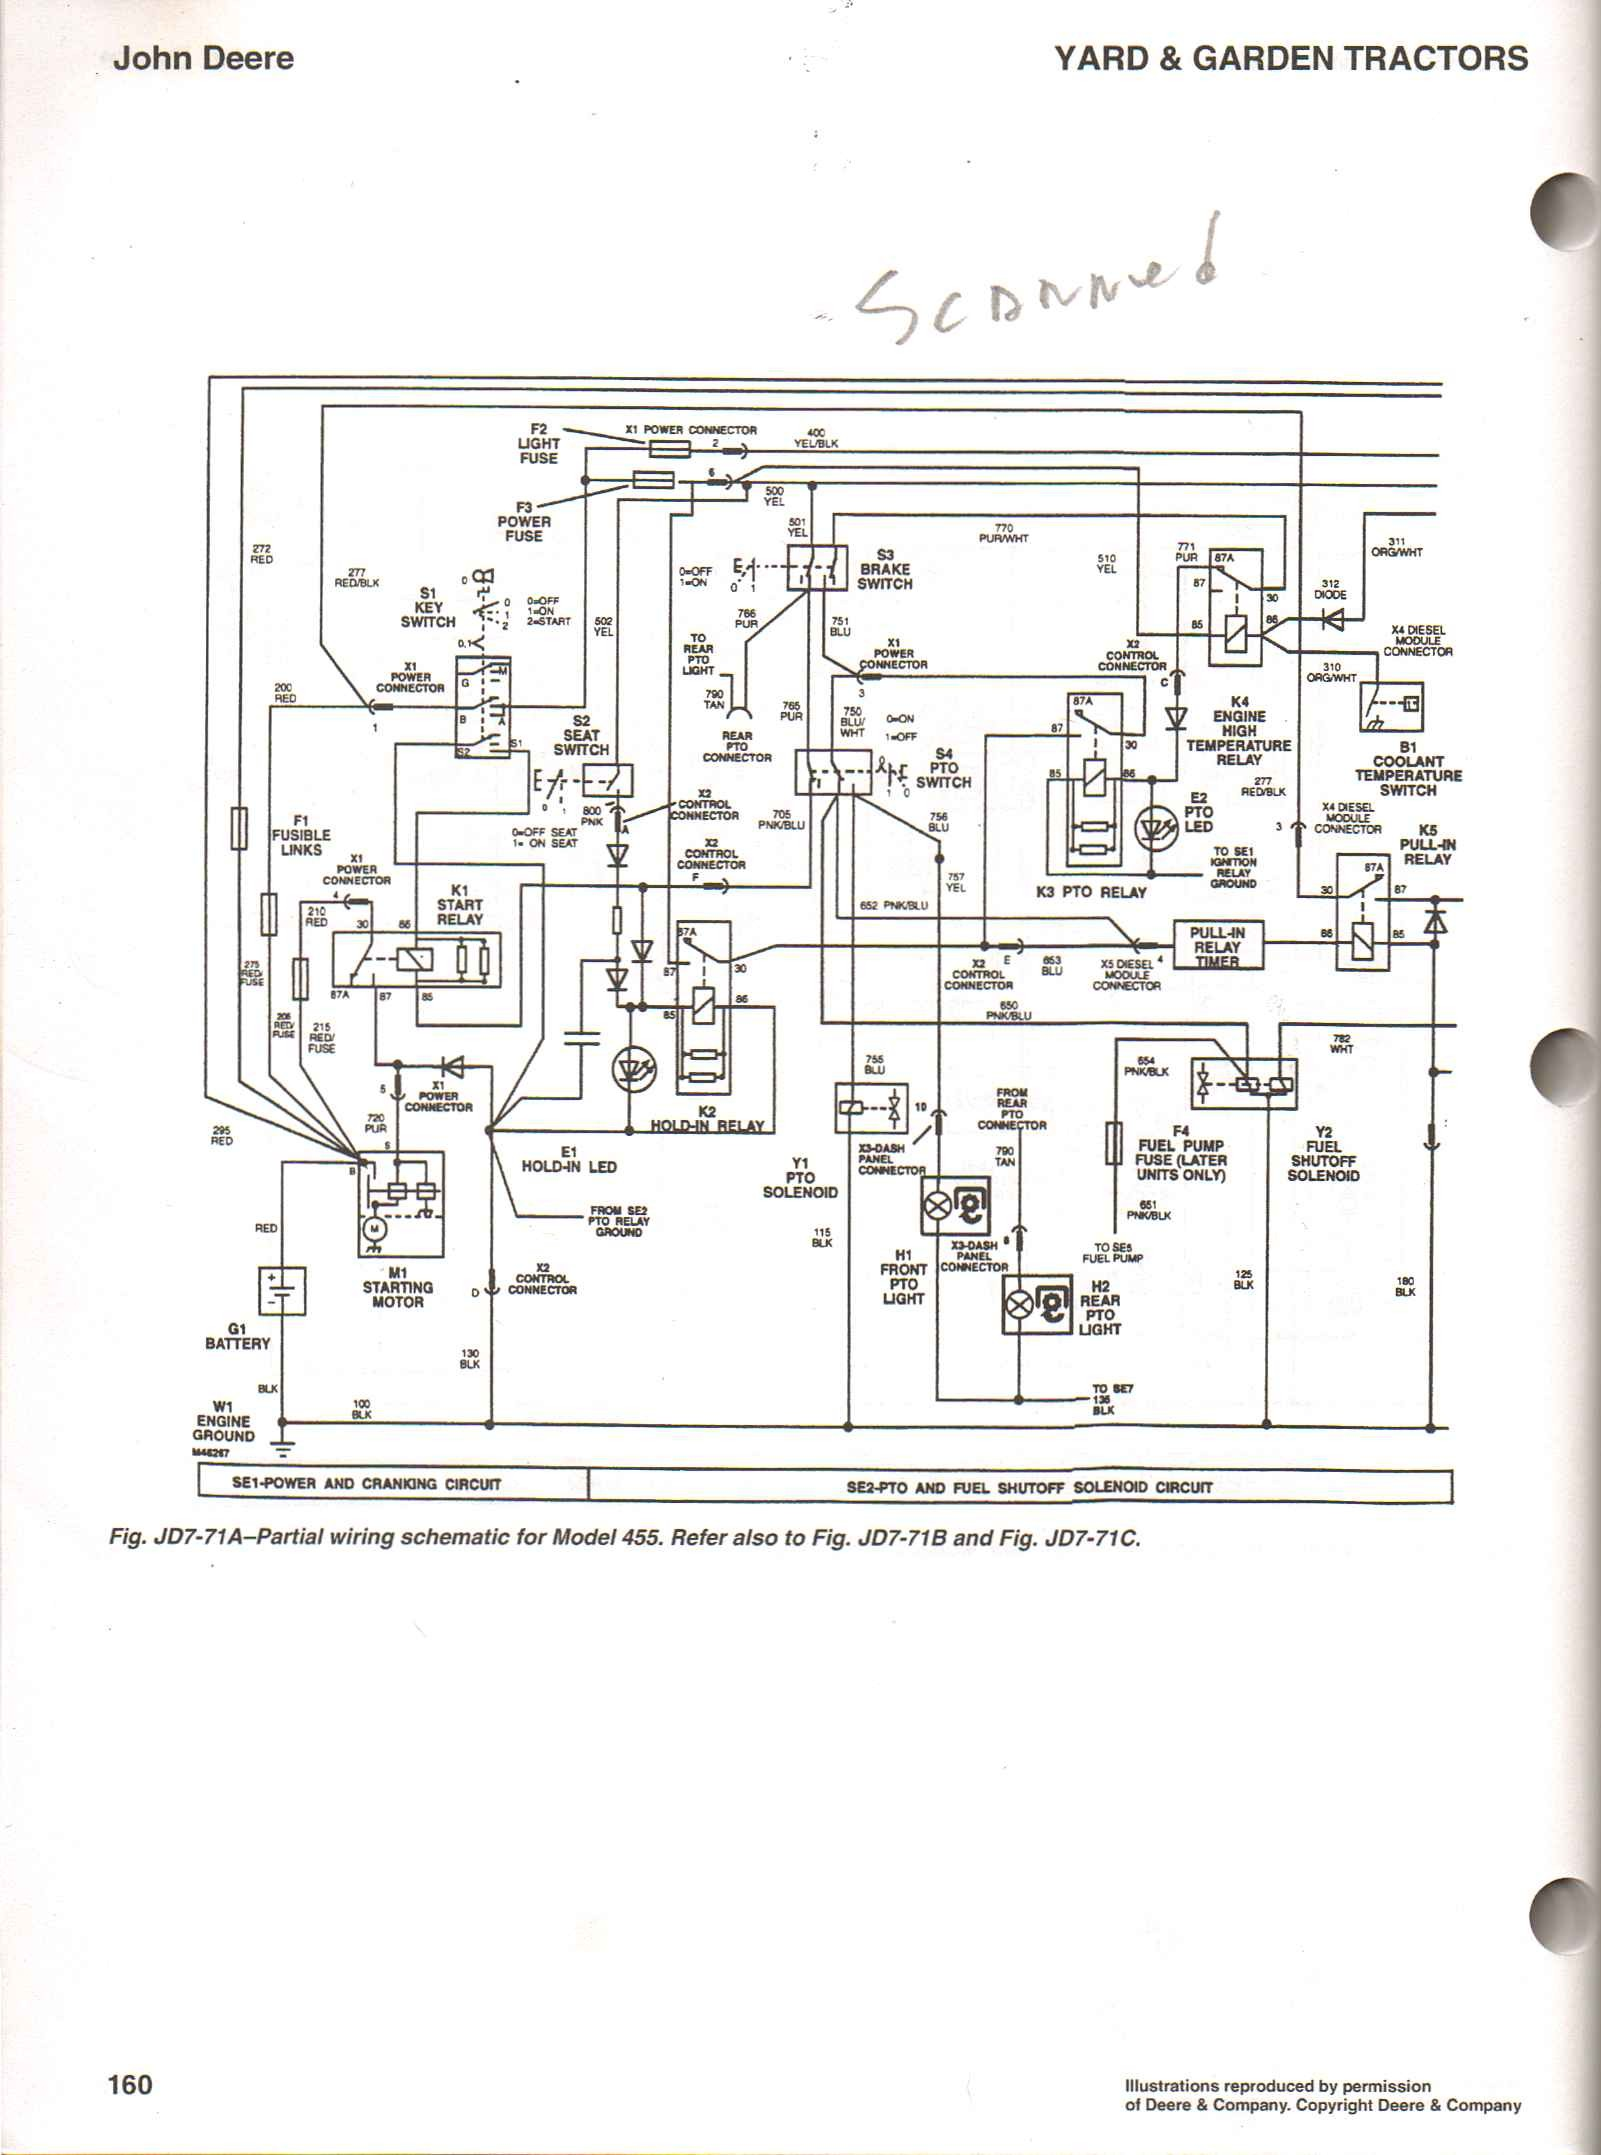 John Deere Pro Gator Wiring Diagram on john deere 111h wiring-diagram, john deere 345 wiring-diagram, john deere l125 wiring-diagram, john deere 455 wiring-diagram, john deere lx255 wiring-diagram, john deere m665 wiring-diagram, john deere lx173 wiring-diagram, john deere gator electrical problems, john deere lx277 wiring-diagram, john deere gt262 wiring-diagram, john deere 155c wiring-diagram, gator tx wiring-diagram, john deere stx38 wiring-diagram, john deere gator horns, john deere z225 wiring-diagram, john deere hpx wiring-diagram, john deere 425 wiring-diagram, john deere 235 wiring-diagram, john deere m wiring-diagram, john deere la105 wiring-diagram,